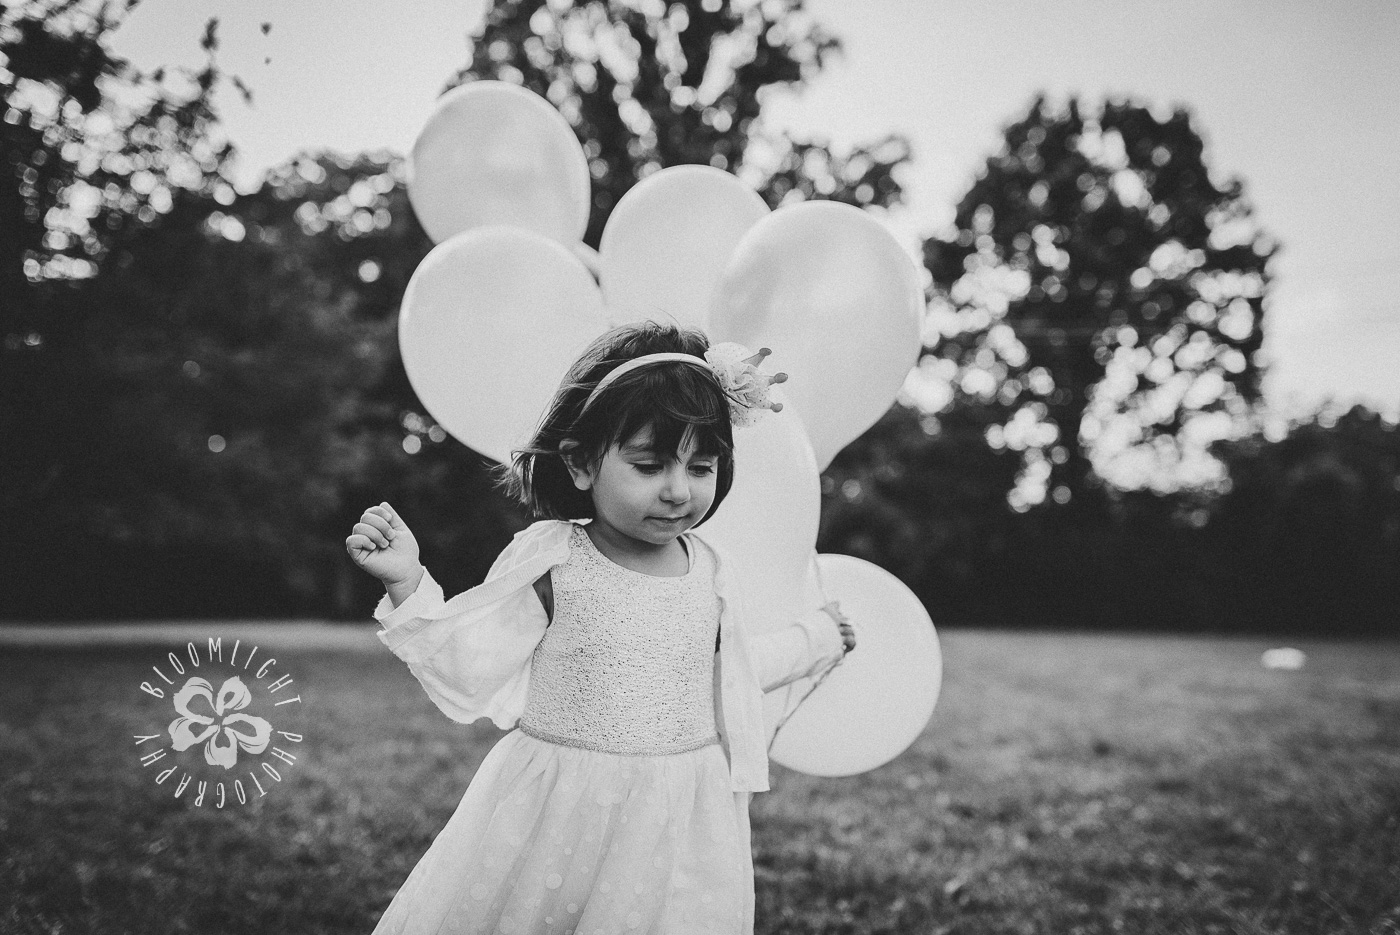 A toddler holding lots of balloons in her hand and running happily in a park in North York, Toronto